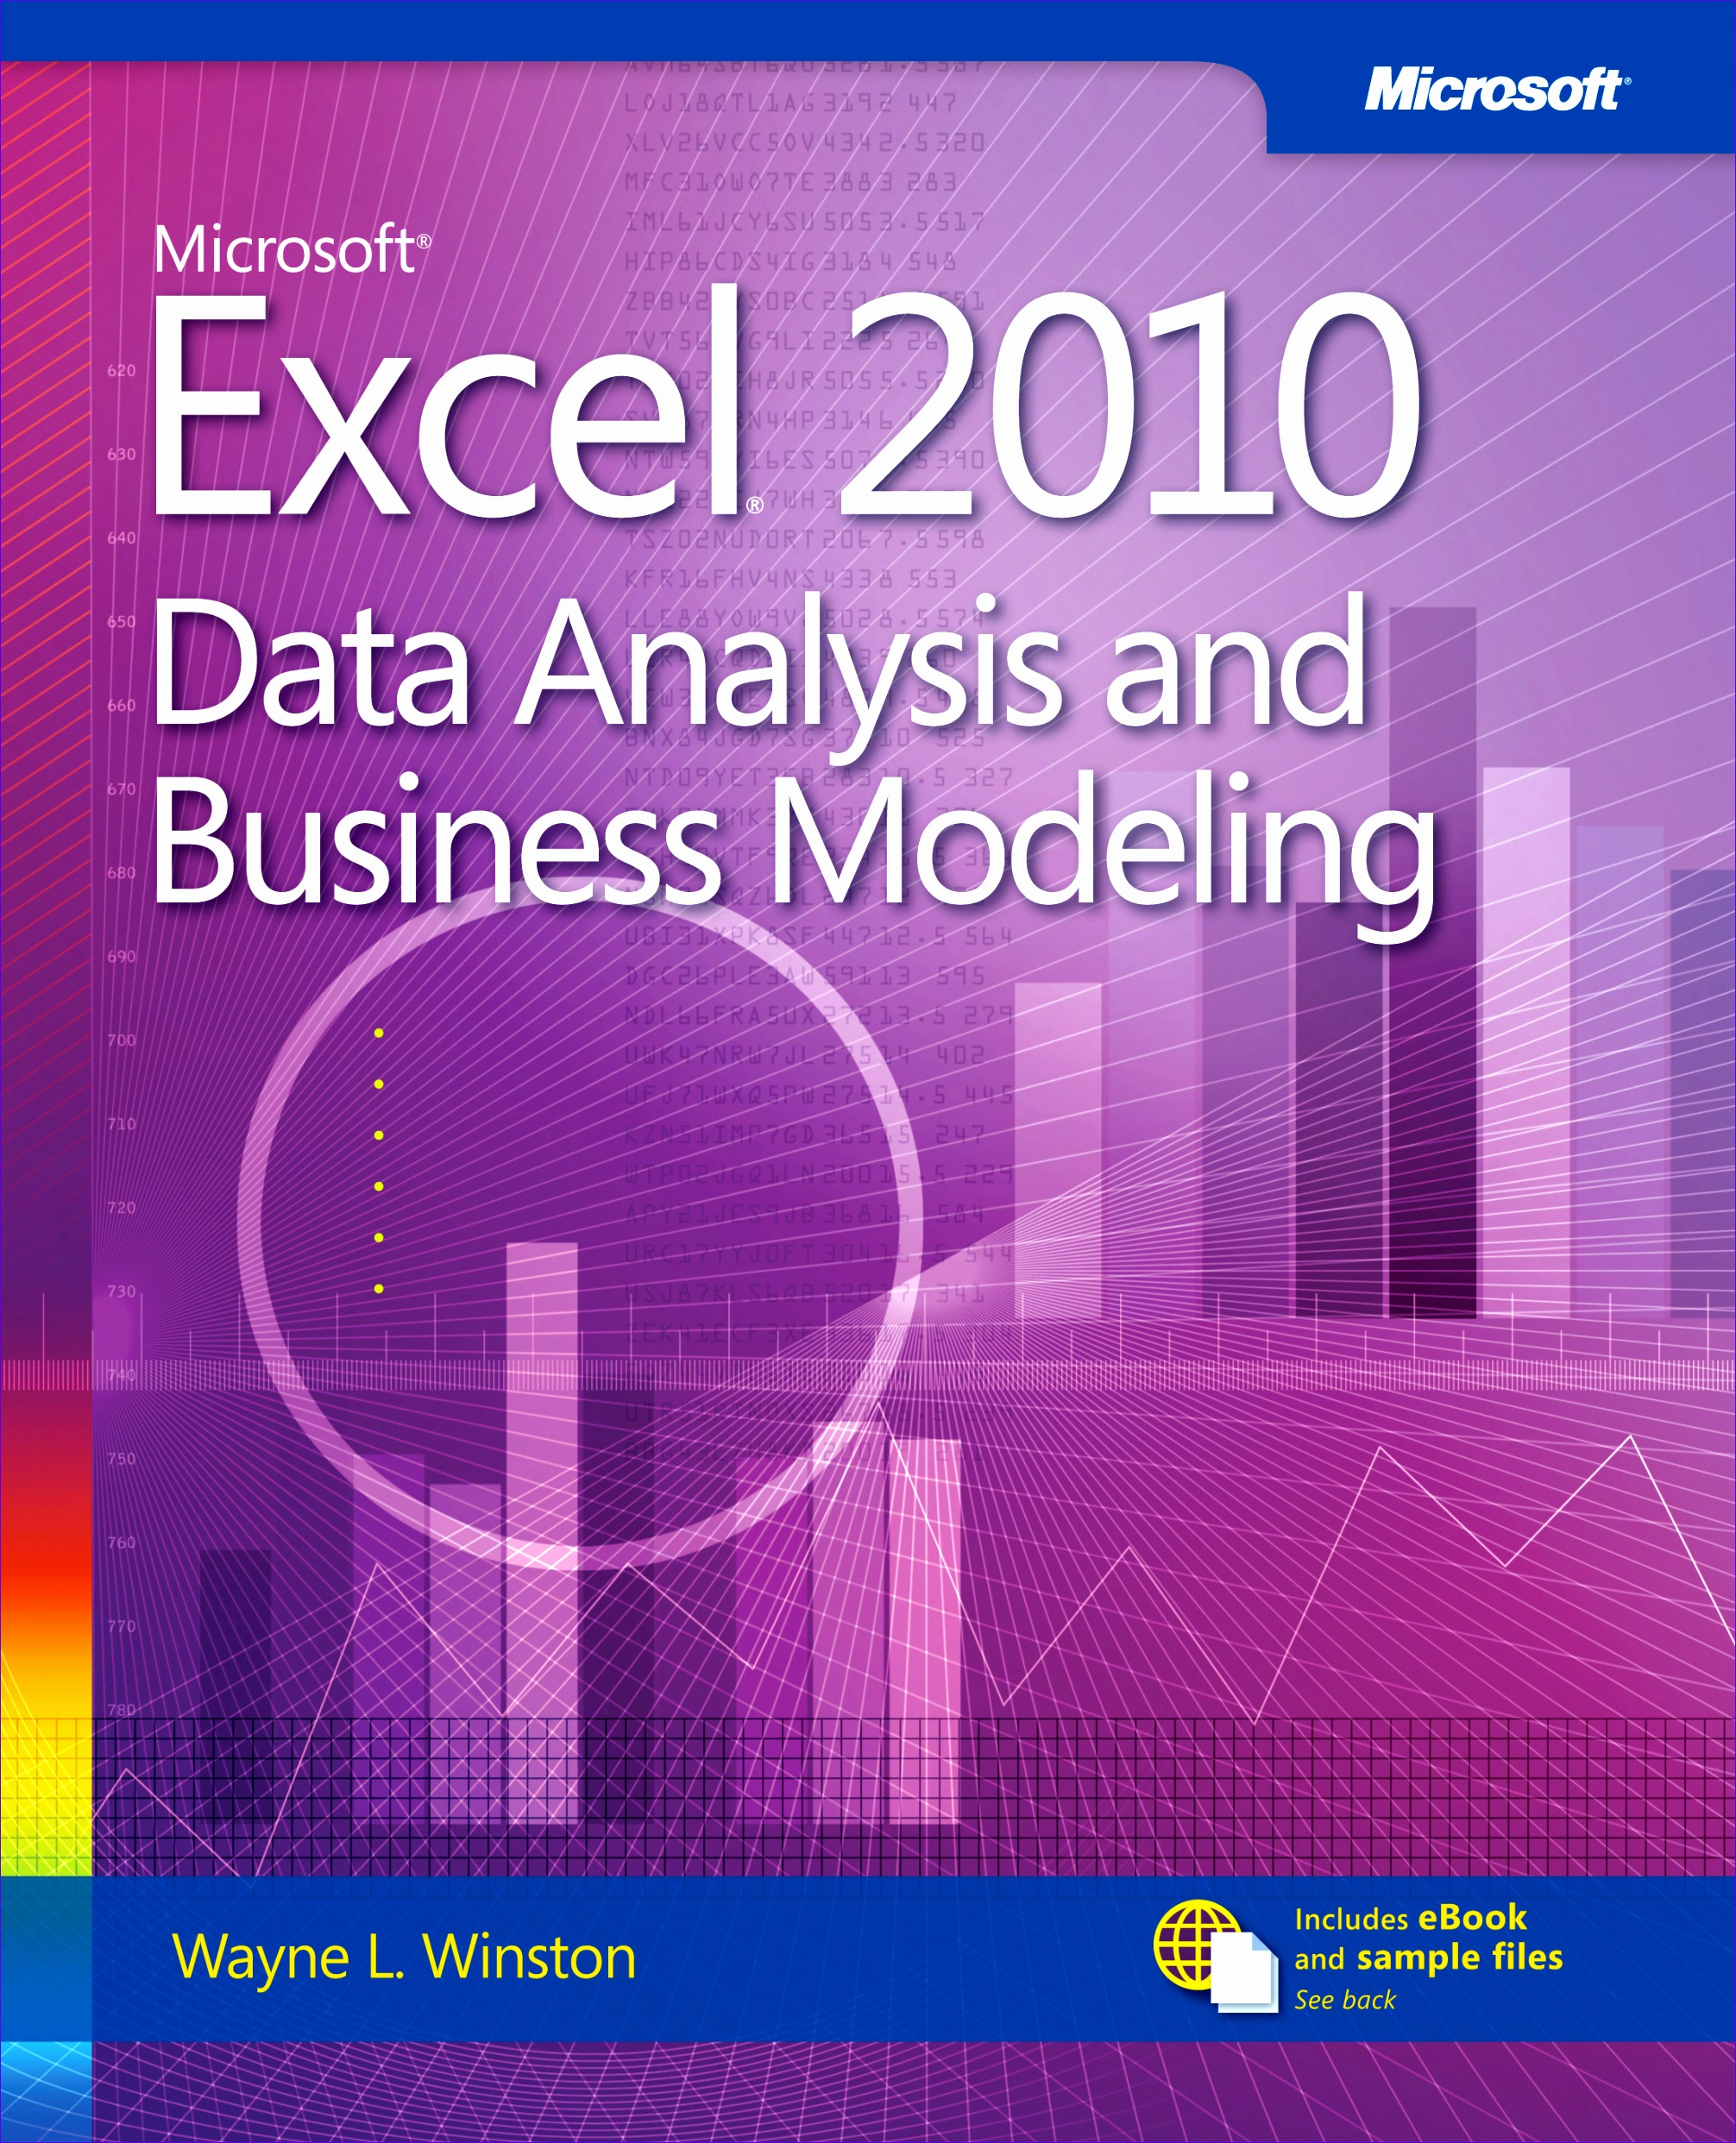 Histogram Template Excel 2010 Dbzko Awesome Microsoft Excel 2010 Data Analysis and Business Modeling